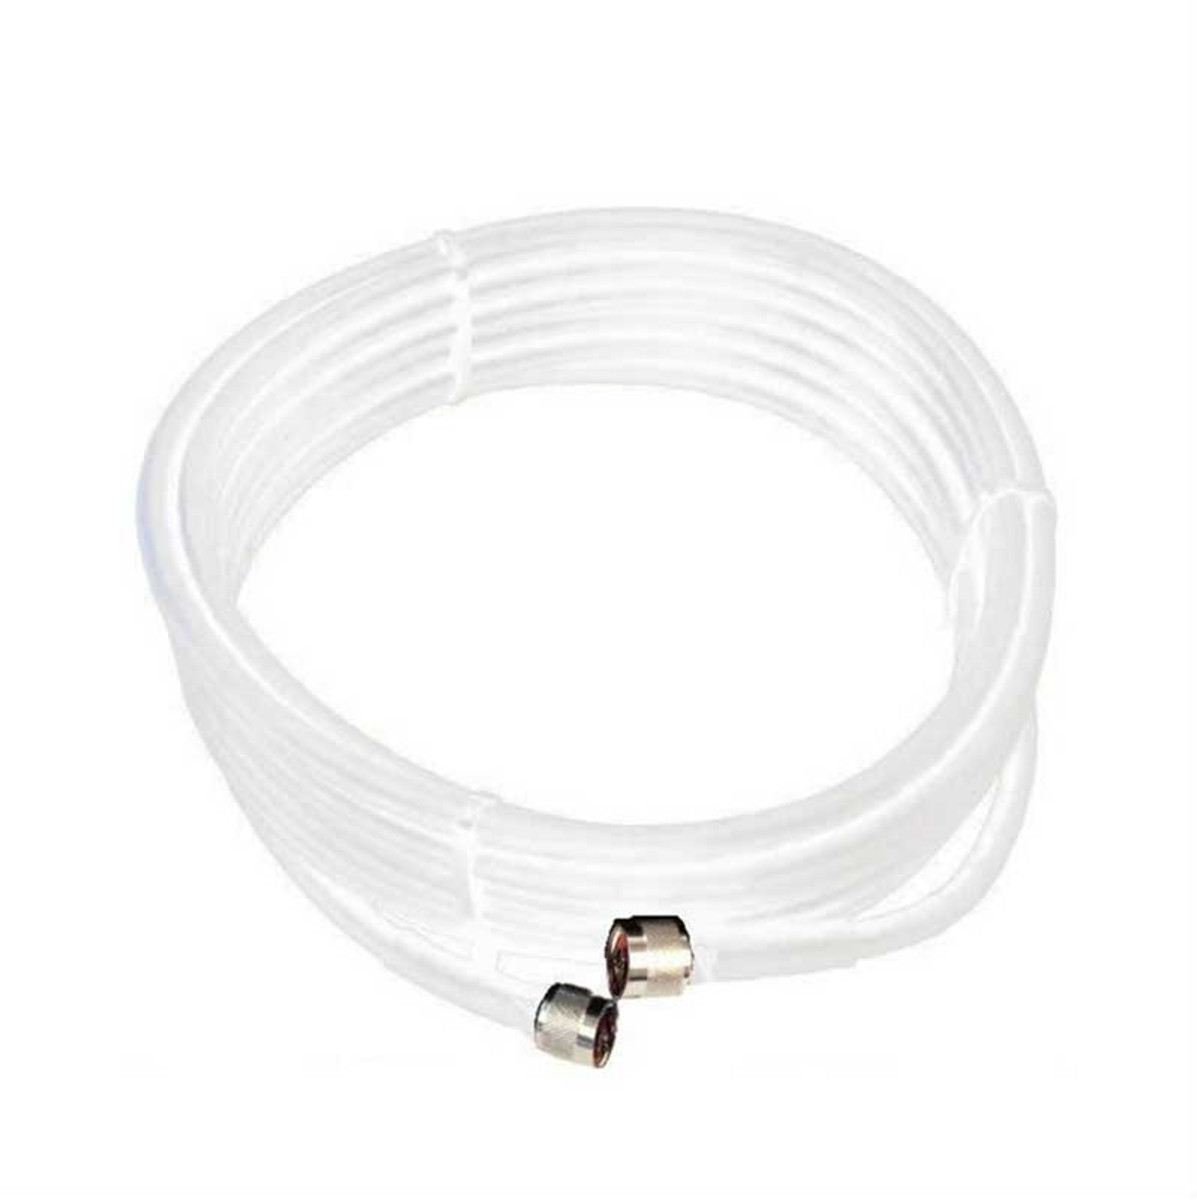 Wilson 952430 30-Foot WILSON400 Ultra Low-Loss Coaxial Cable Male-Male White, main